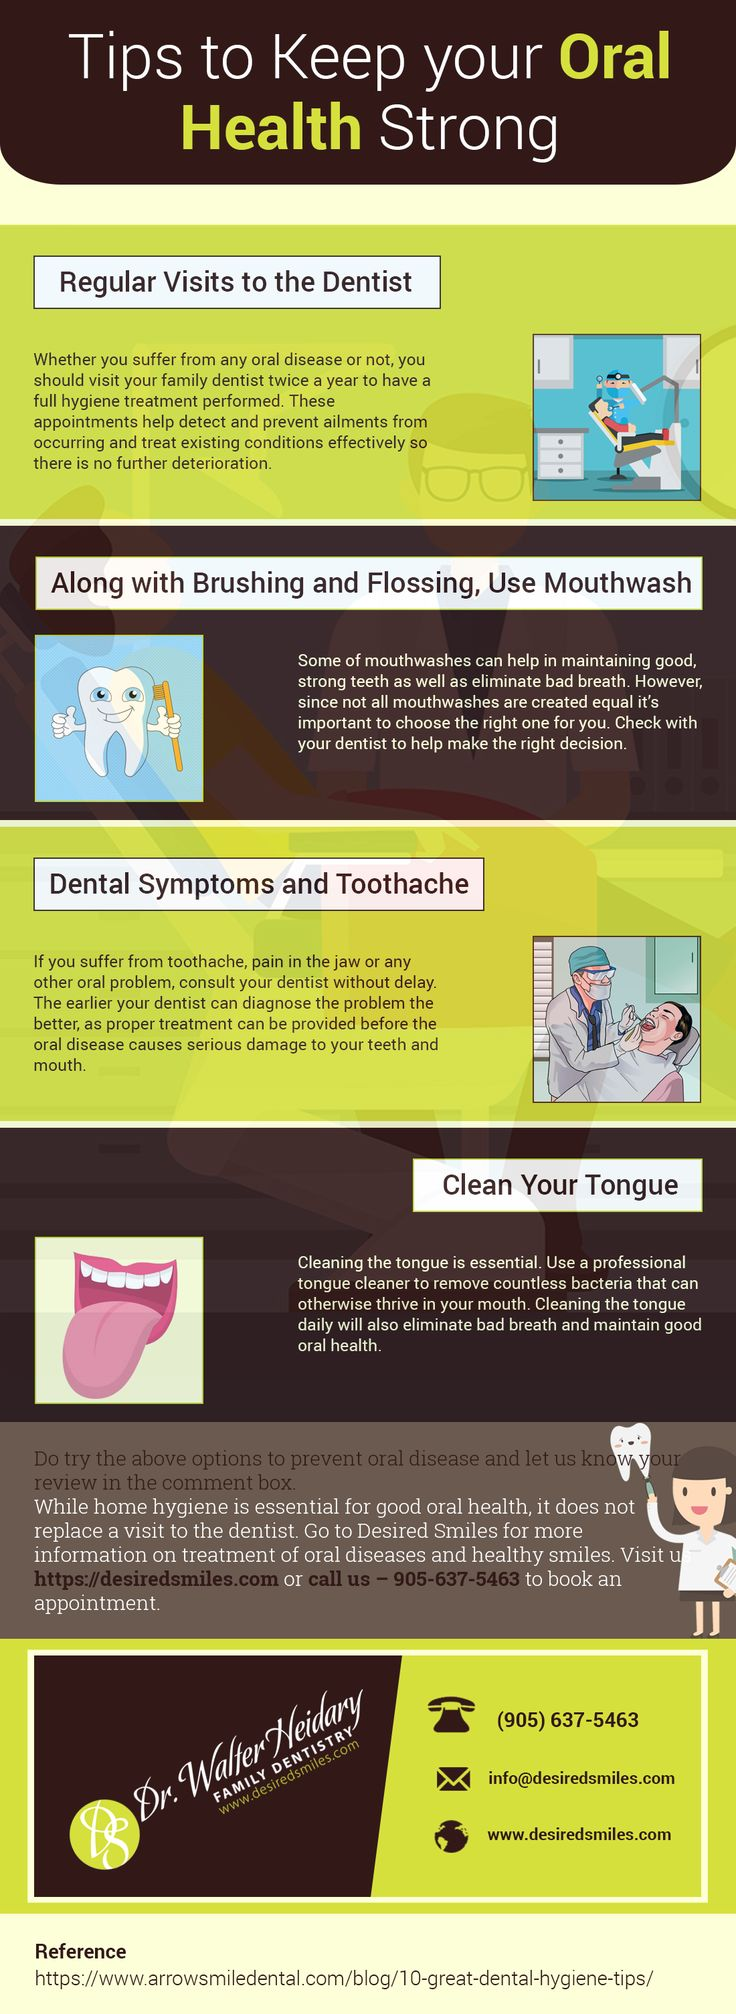 4 Tips for Good Oral Health.  There are several tips and hygiene practices to take care of your oral health. This visual graphic shows 4 most effective tips to maintain healthy gums and strong teeth.   If you suffer from dental issues, don't delay your visit to the dentist.  Call Us at 905-637-5463 or Visit Us at https://desiredsmiles.com